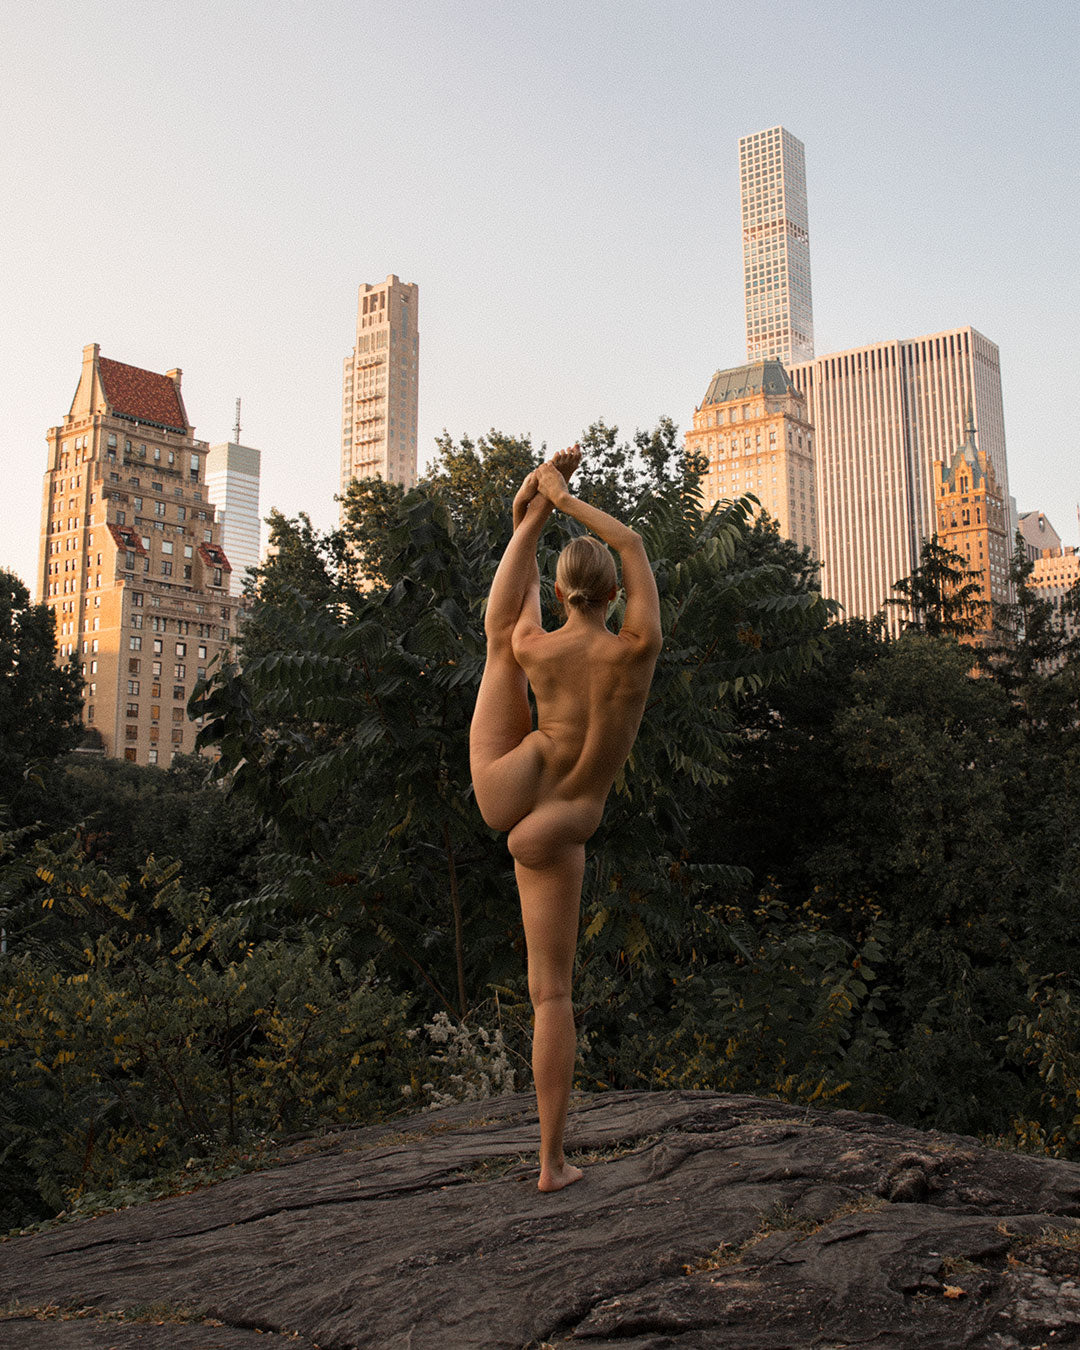 Woman posing during nude photoshoot in central park